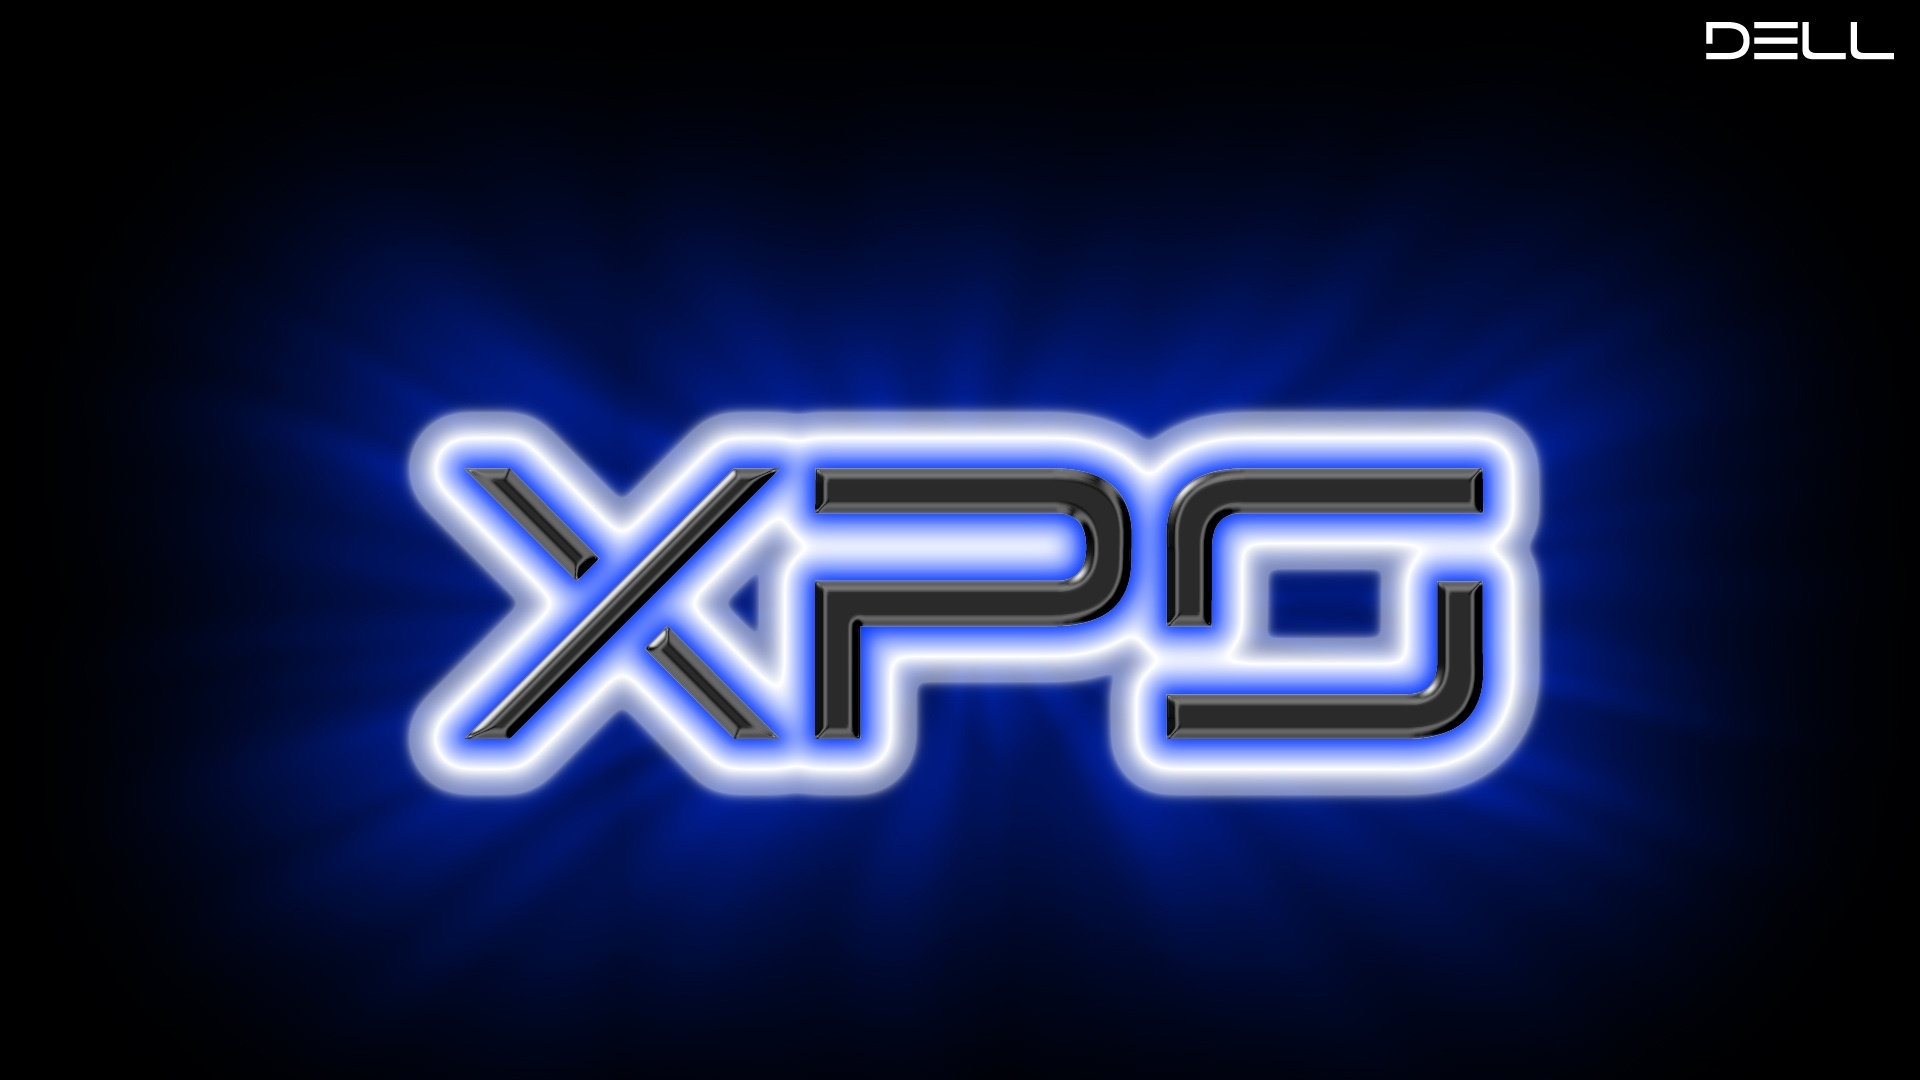 Xps wallpaper   841478 1920x1080